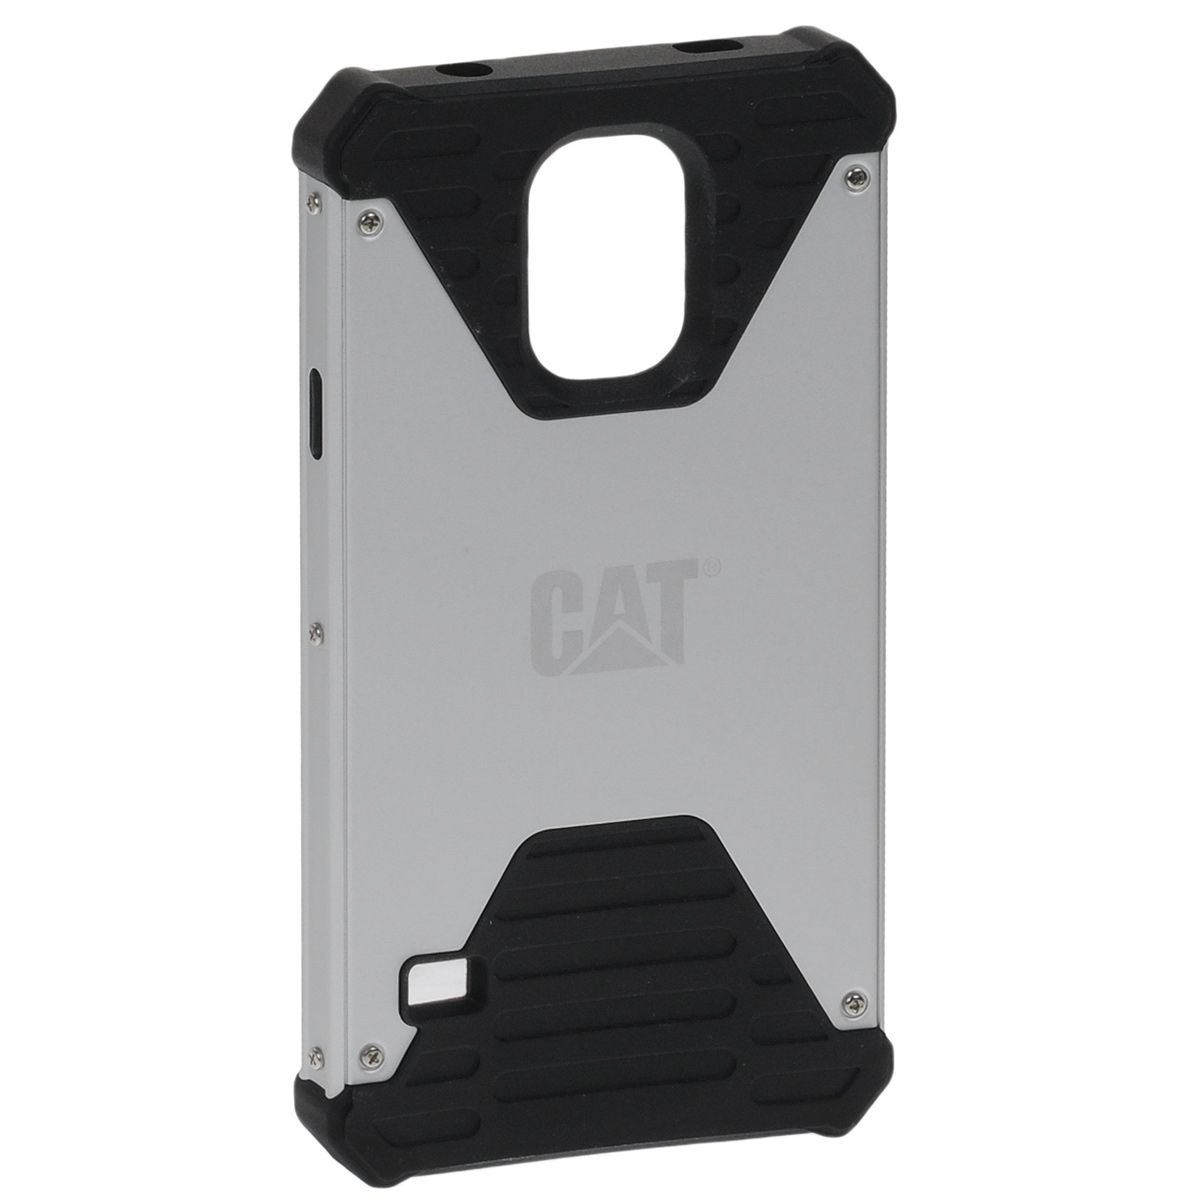 Caterpillar Active Signature противоударный чехол для Samsung Galaxy S5 caterpillar active signature для apple iphone 6 black